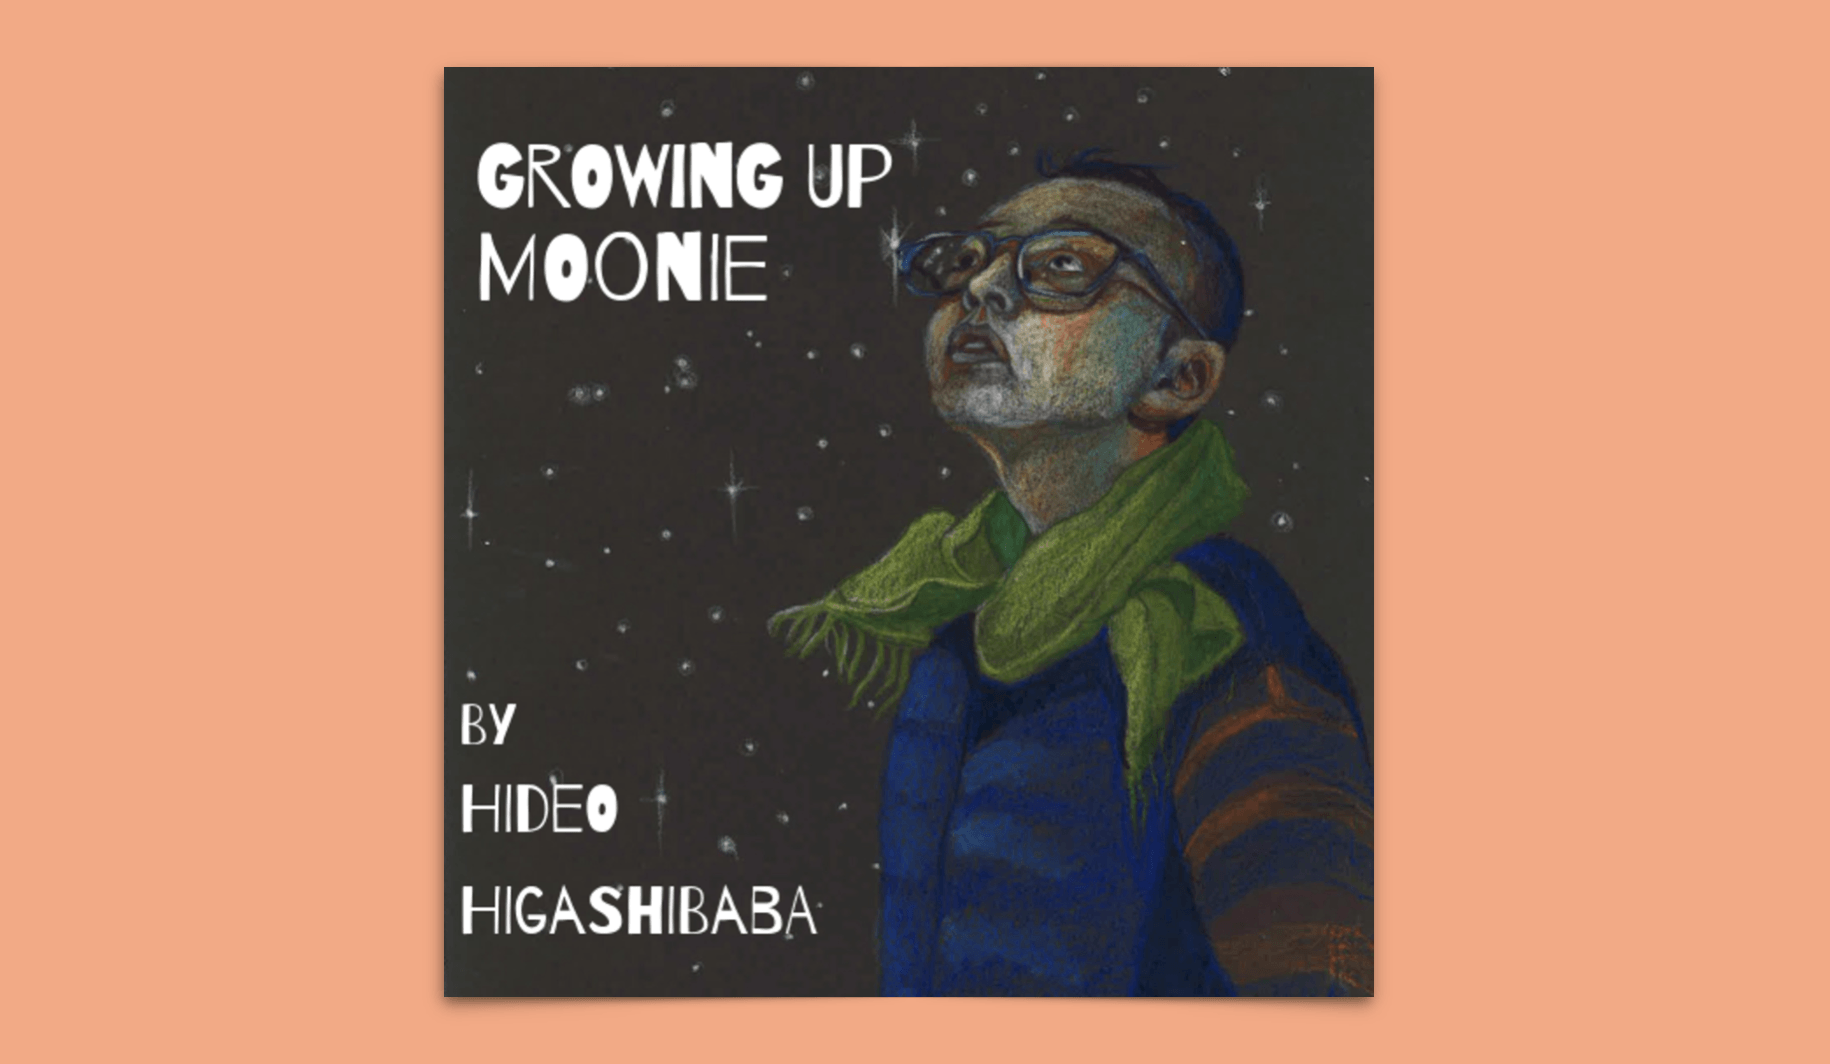 Growing Up Moonie Hideo Higashibaba